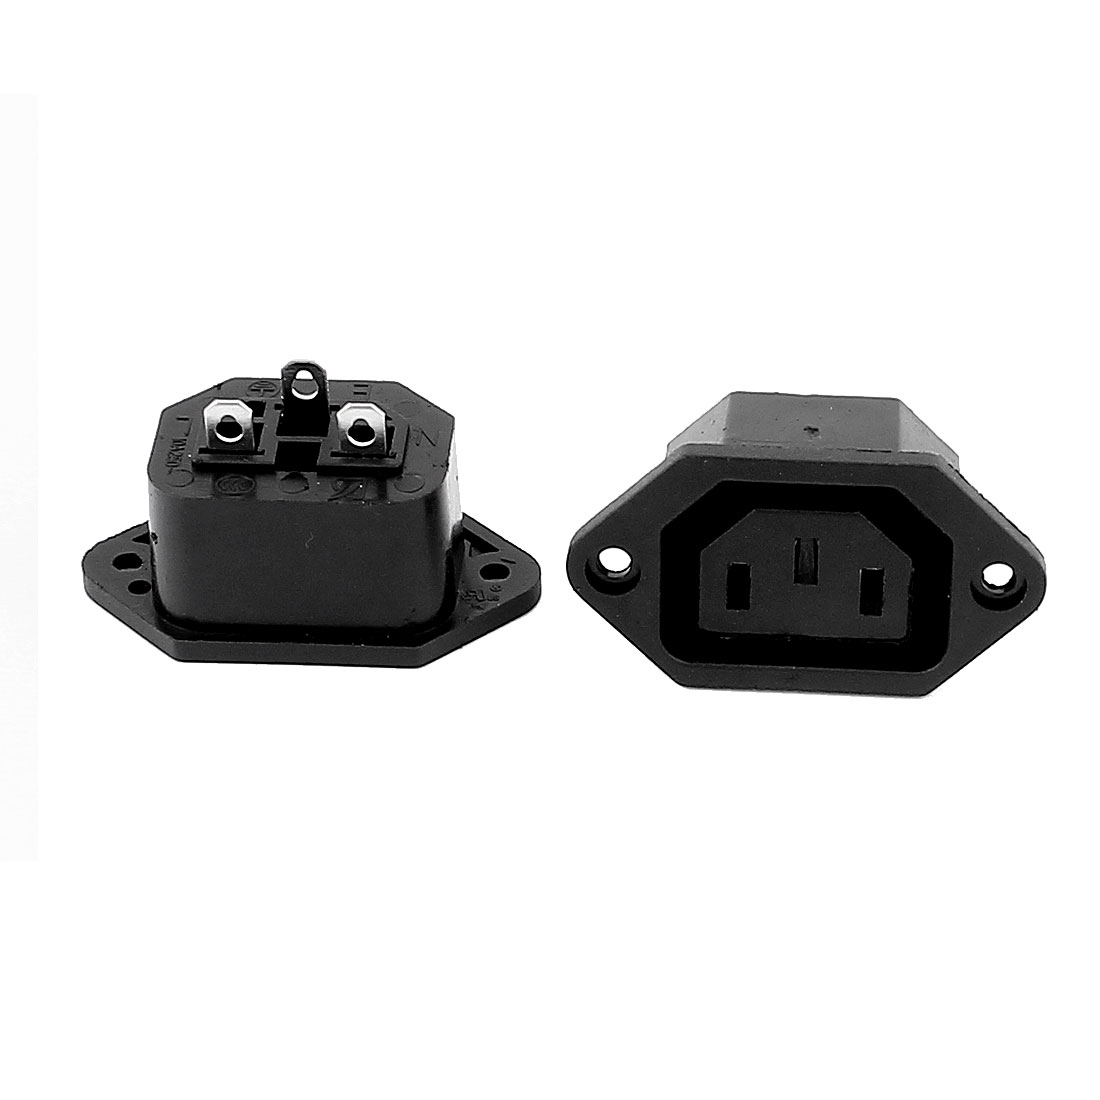 2pcs AC 250V 10A IEC 320 C13 3 Terminal Panel Mount Female Connector Adapter Convertor Power Socket